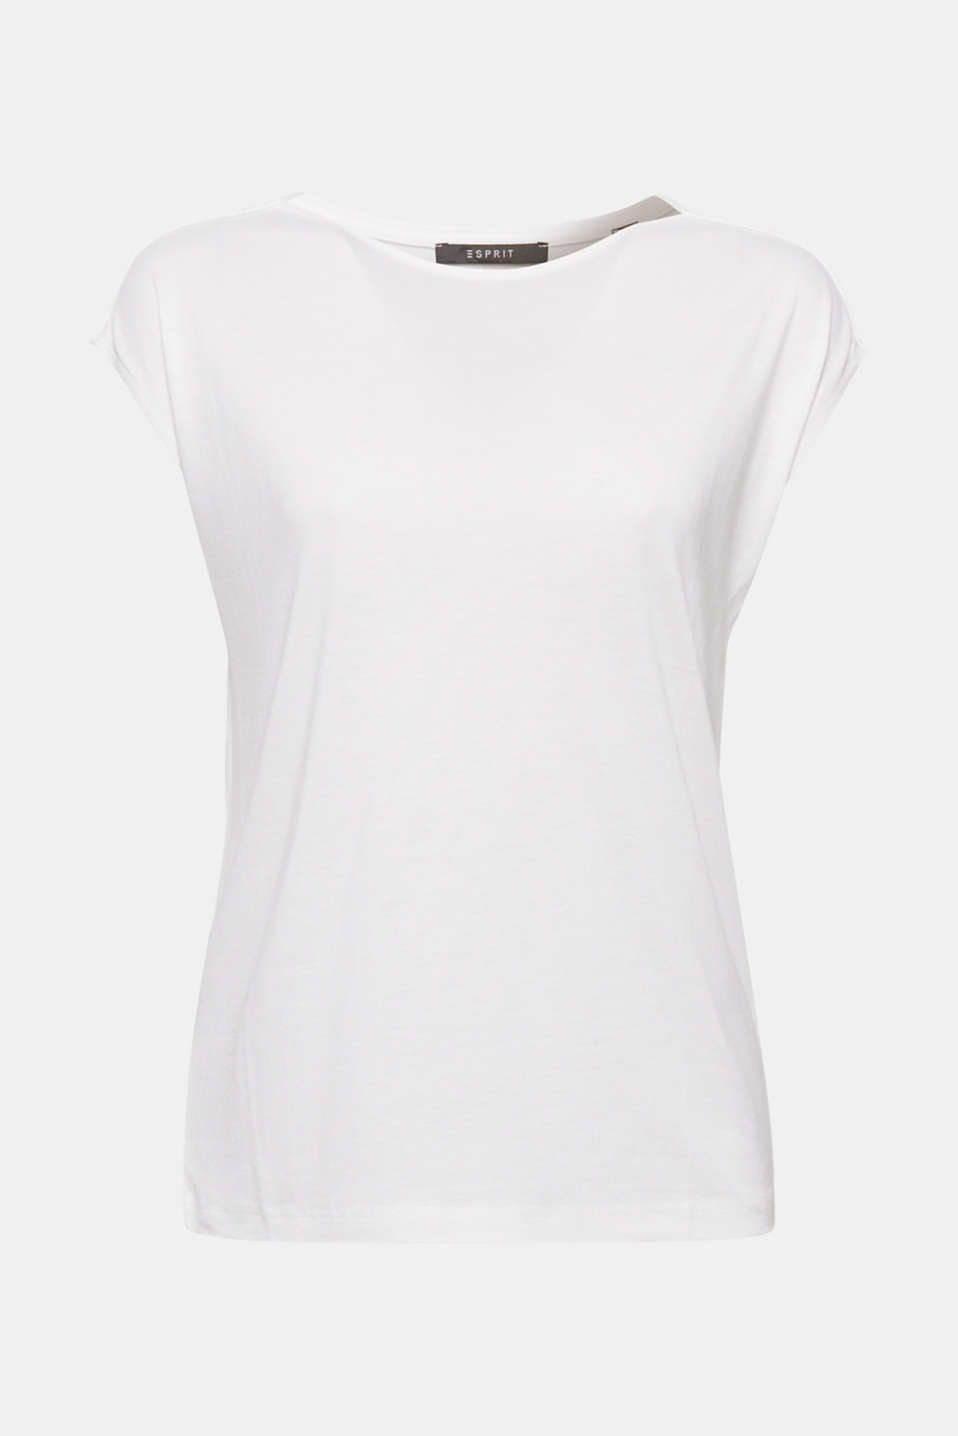 The style of this lightweight top with dropped shoulders and piped shoulder seams in versatile and elegant!